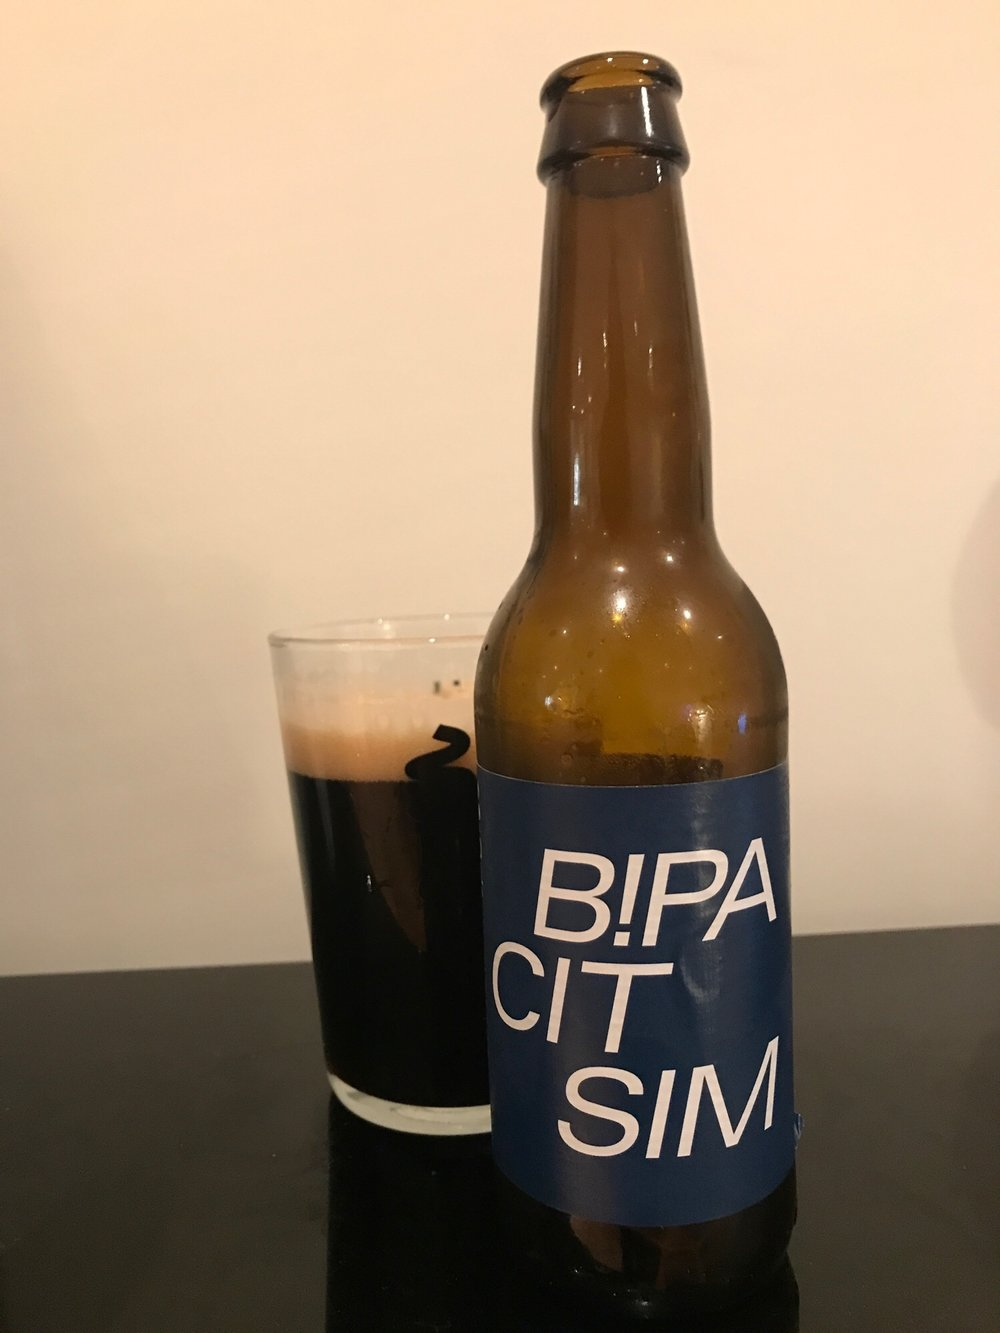 Day Ten: Shock Series - B!PA Citra & Simcoe // Black IPA 7.3% - We've hit double digit days with yet another beer style. This time a punchy black IPA.I never used to understand this style - if I wanted a dark beer I'd have a stout or a porter surely? Why would I want a dark IPA? Past Hedges, you're a bloody idiot. Shut your mouth and drink this.It's a beer that packs in a whole host of flavours and aromas. The roasted malts and added coffee give it a deep, warming, bitter taste but that's contrasted with the fruity hops which makes this surprisingly light and eminently drinkable. It does not feel like drinking a beer that's anywhere near 7.3%.It's weird how dismissive I was of this style of beer considering how varied and interesting it tastes. Maybe my first ever one was guff and I just assumed they'd all be bad. At least I'm not an idiot anymore. Or not as much as one.